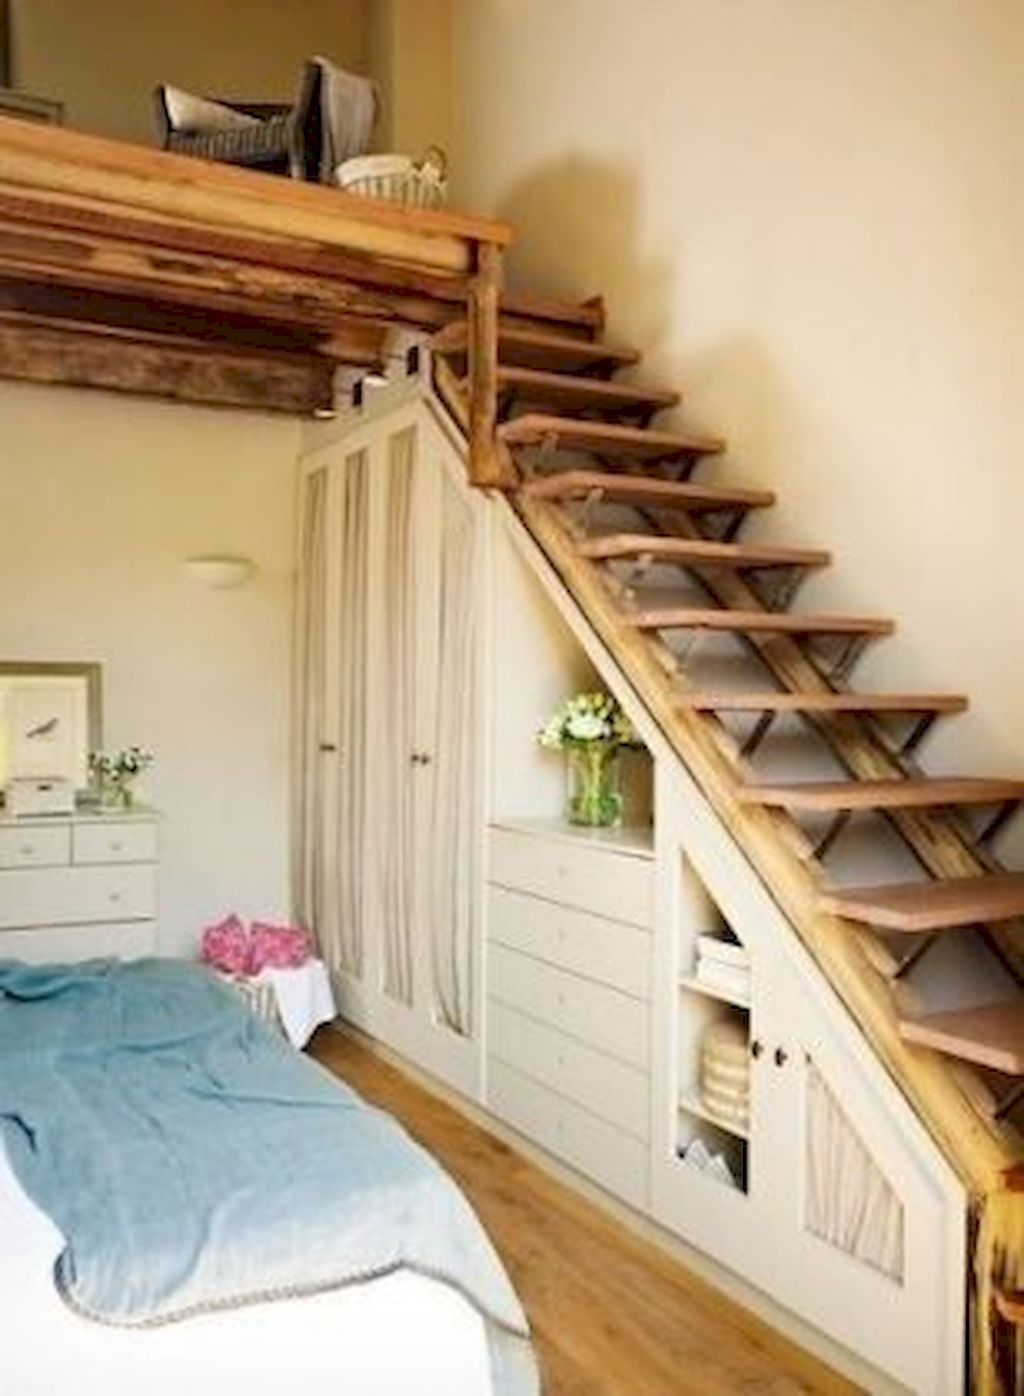 Bedroom with loft ideas   Incredible Loft Stair Ideas Small Room  Loft stairs Small rooms